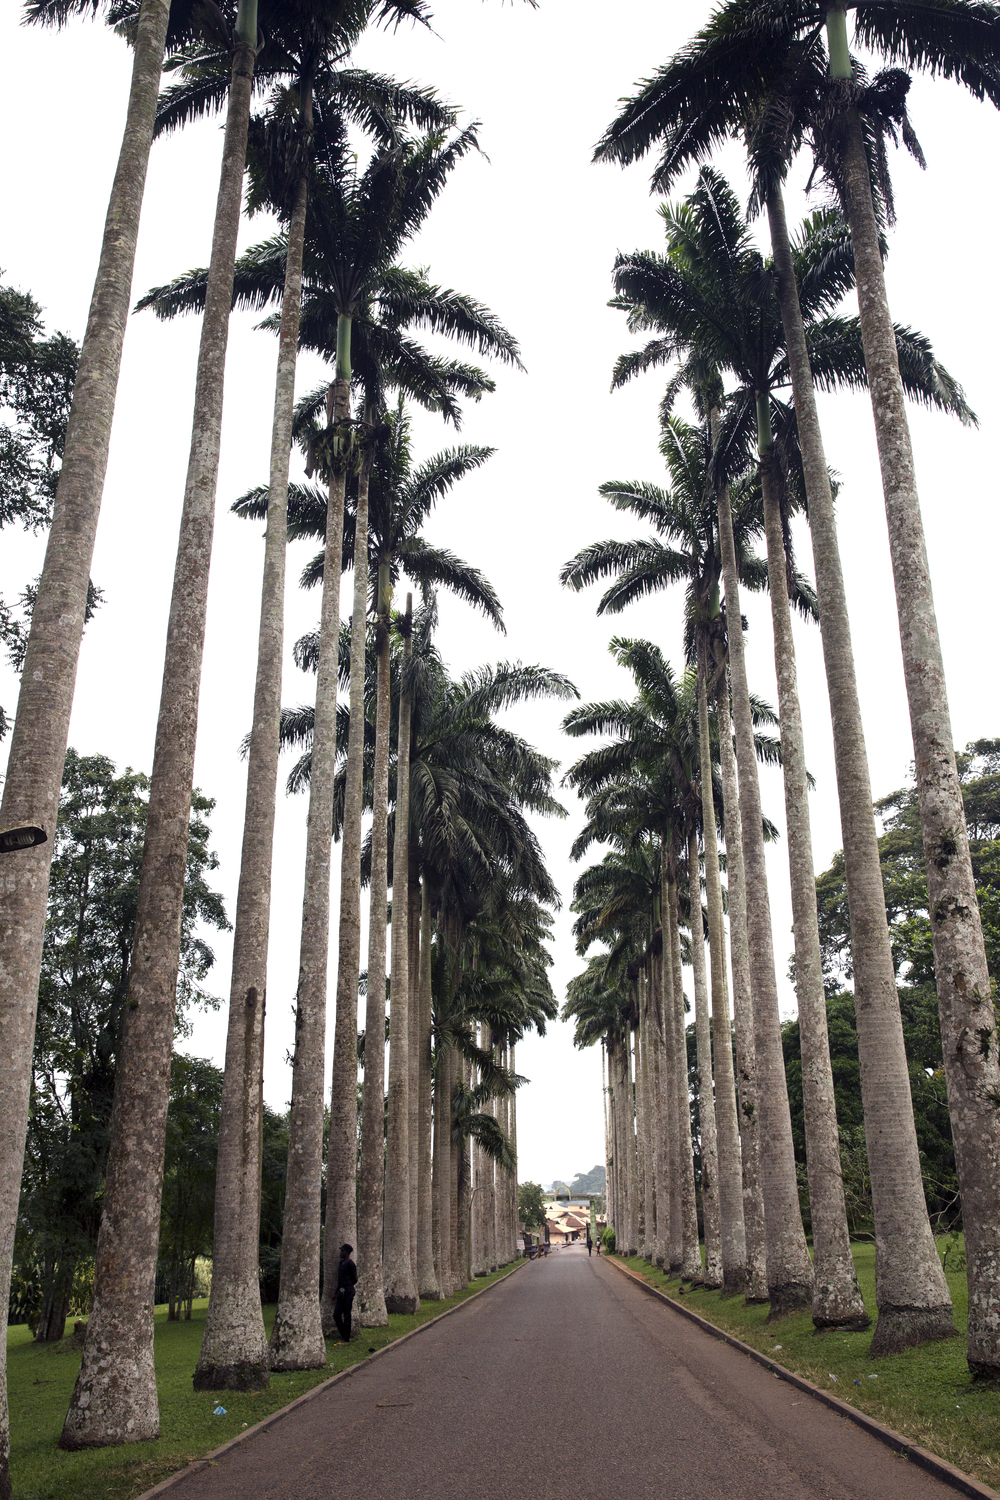 The entrance to the Aburi Gardens.